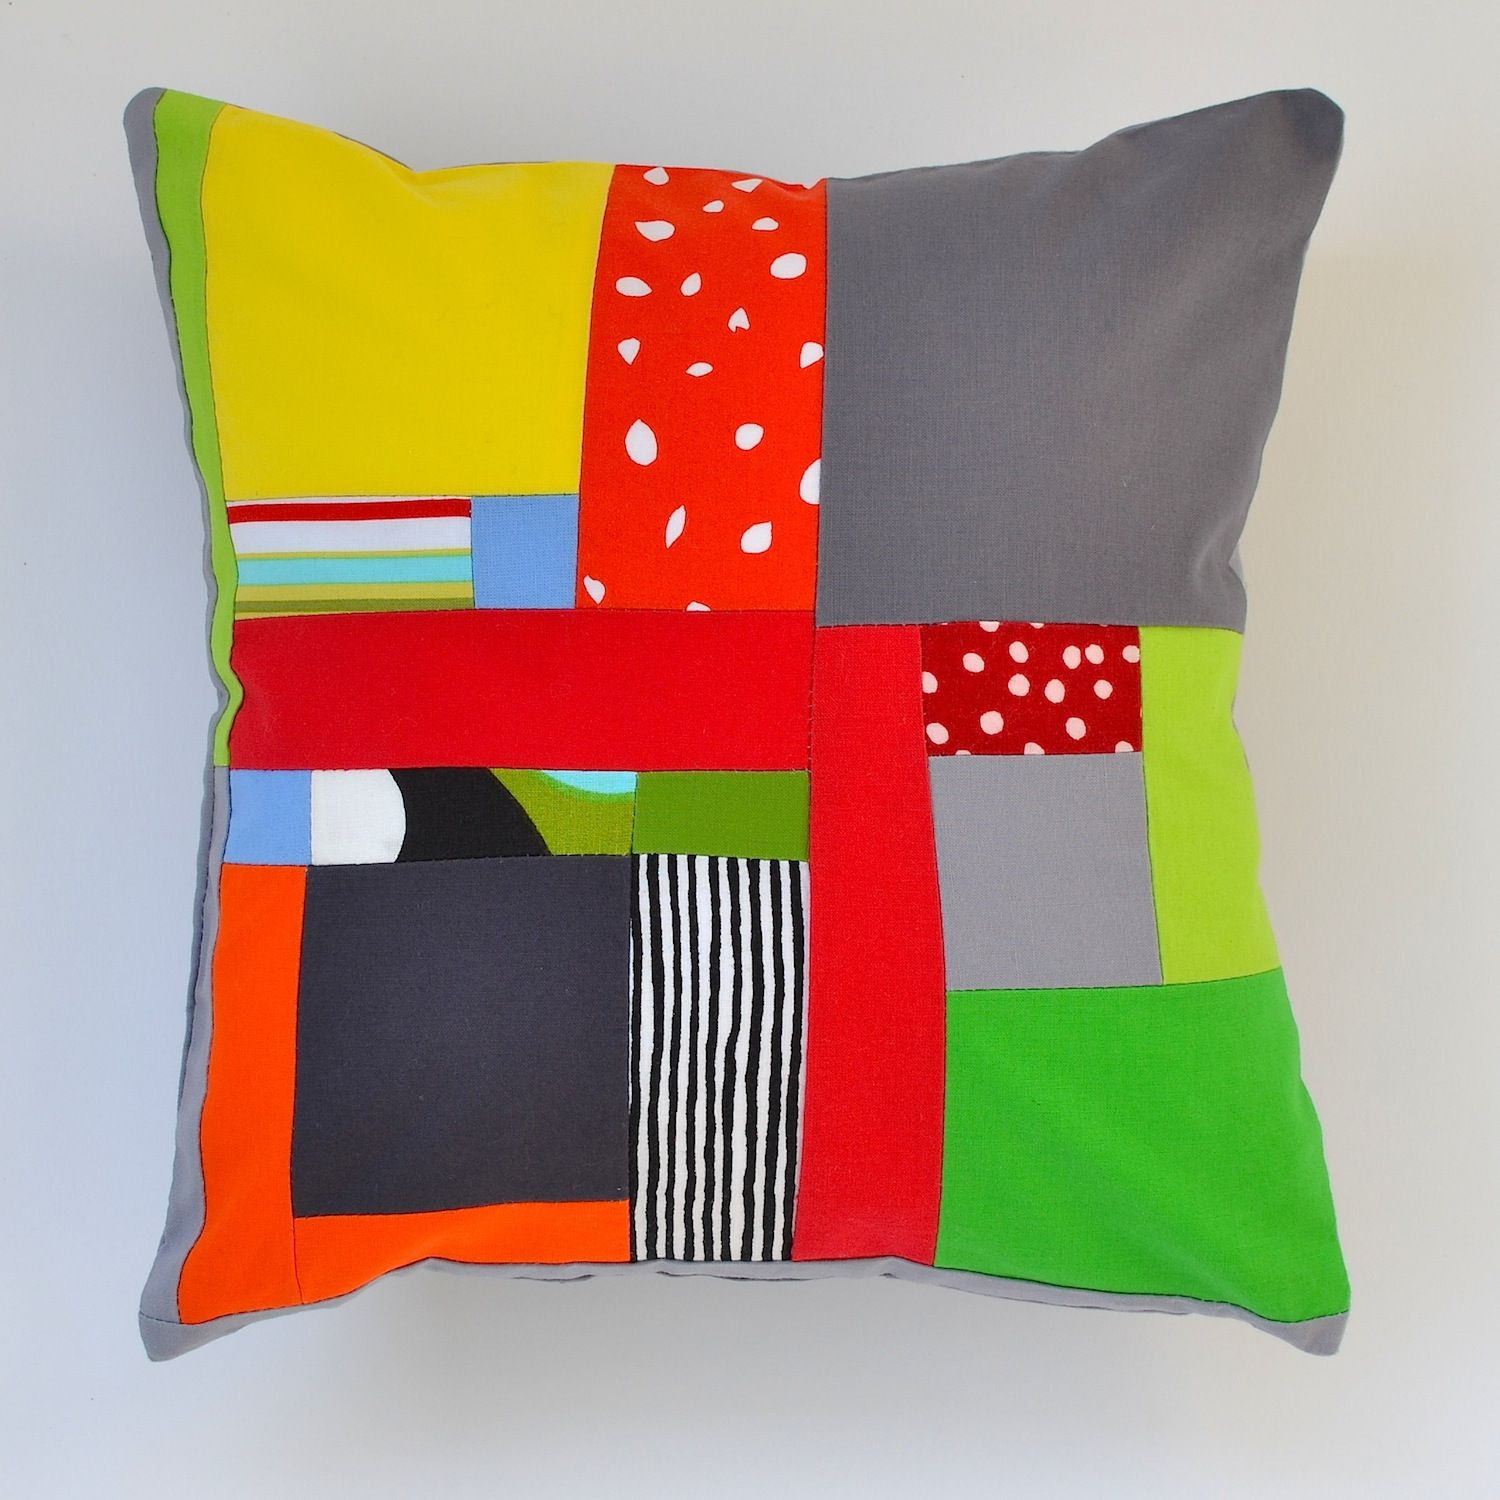 Funhouse I pillow (front) by Jaffworks